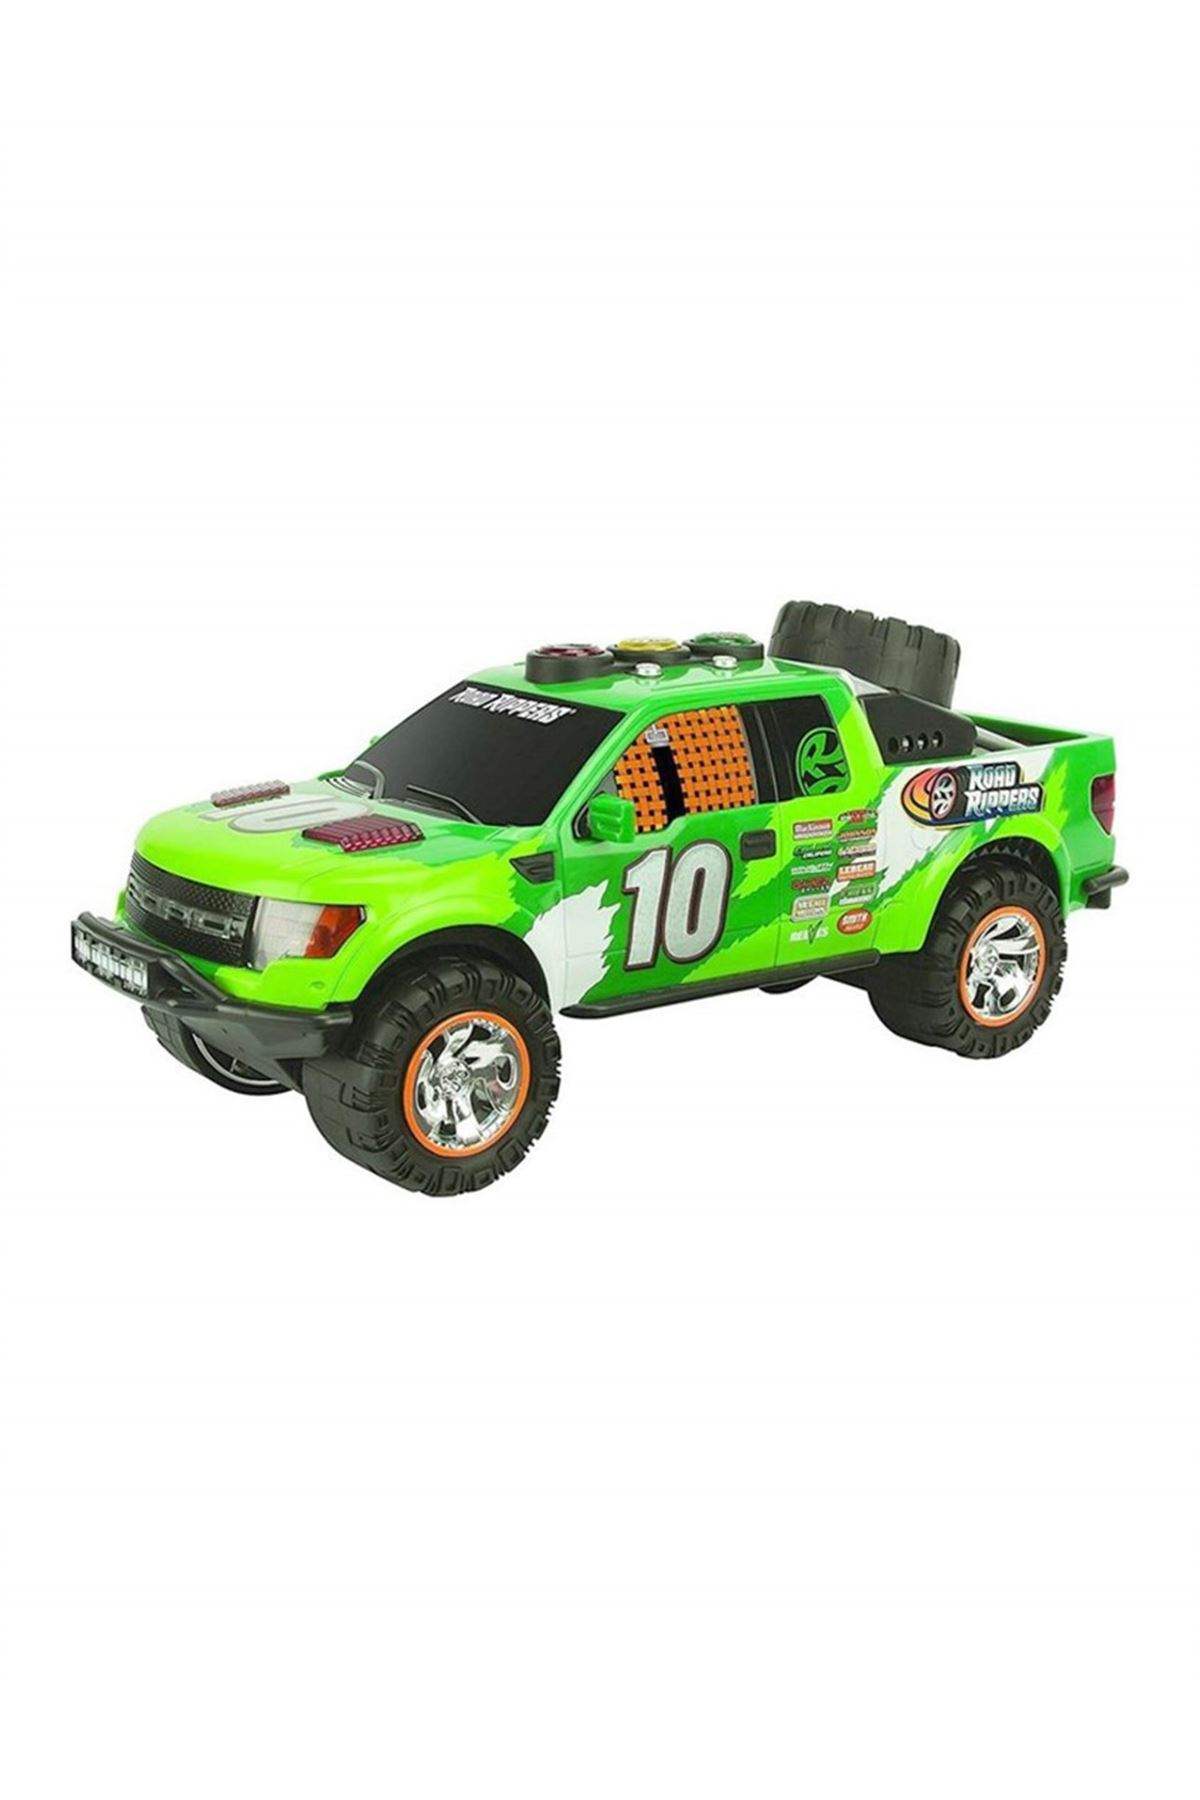 Road Rippers Come-Back Racers Ford F-150 Svt Raptor